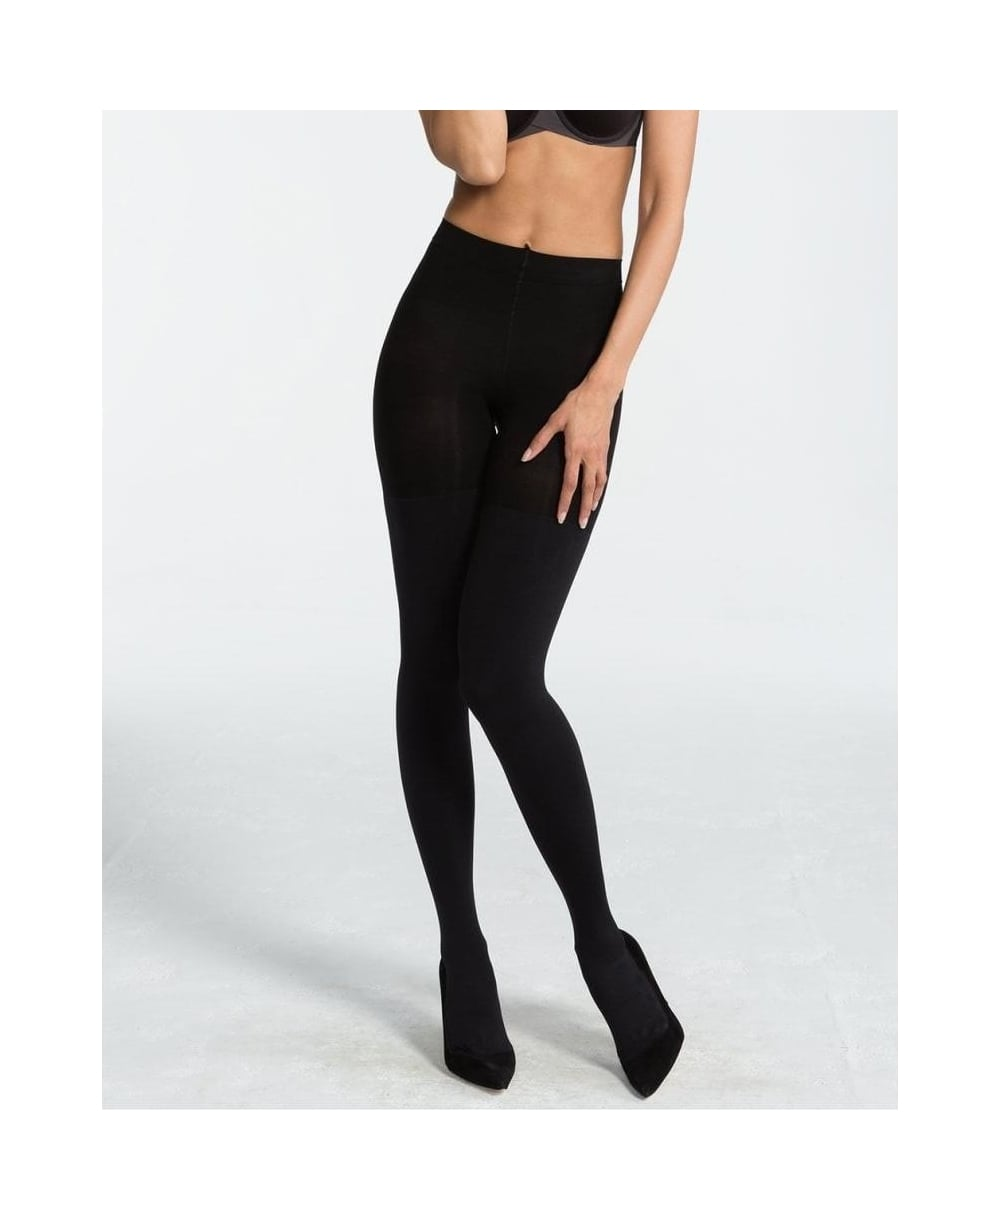 d43e3dcfbe7 Spanx Luxe Leg Blackout 100 Denier Shaper Tights - Tights from luxury-legs.com  UK